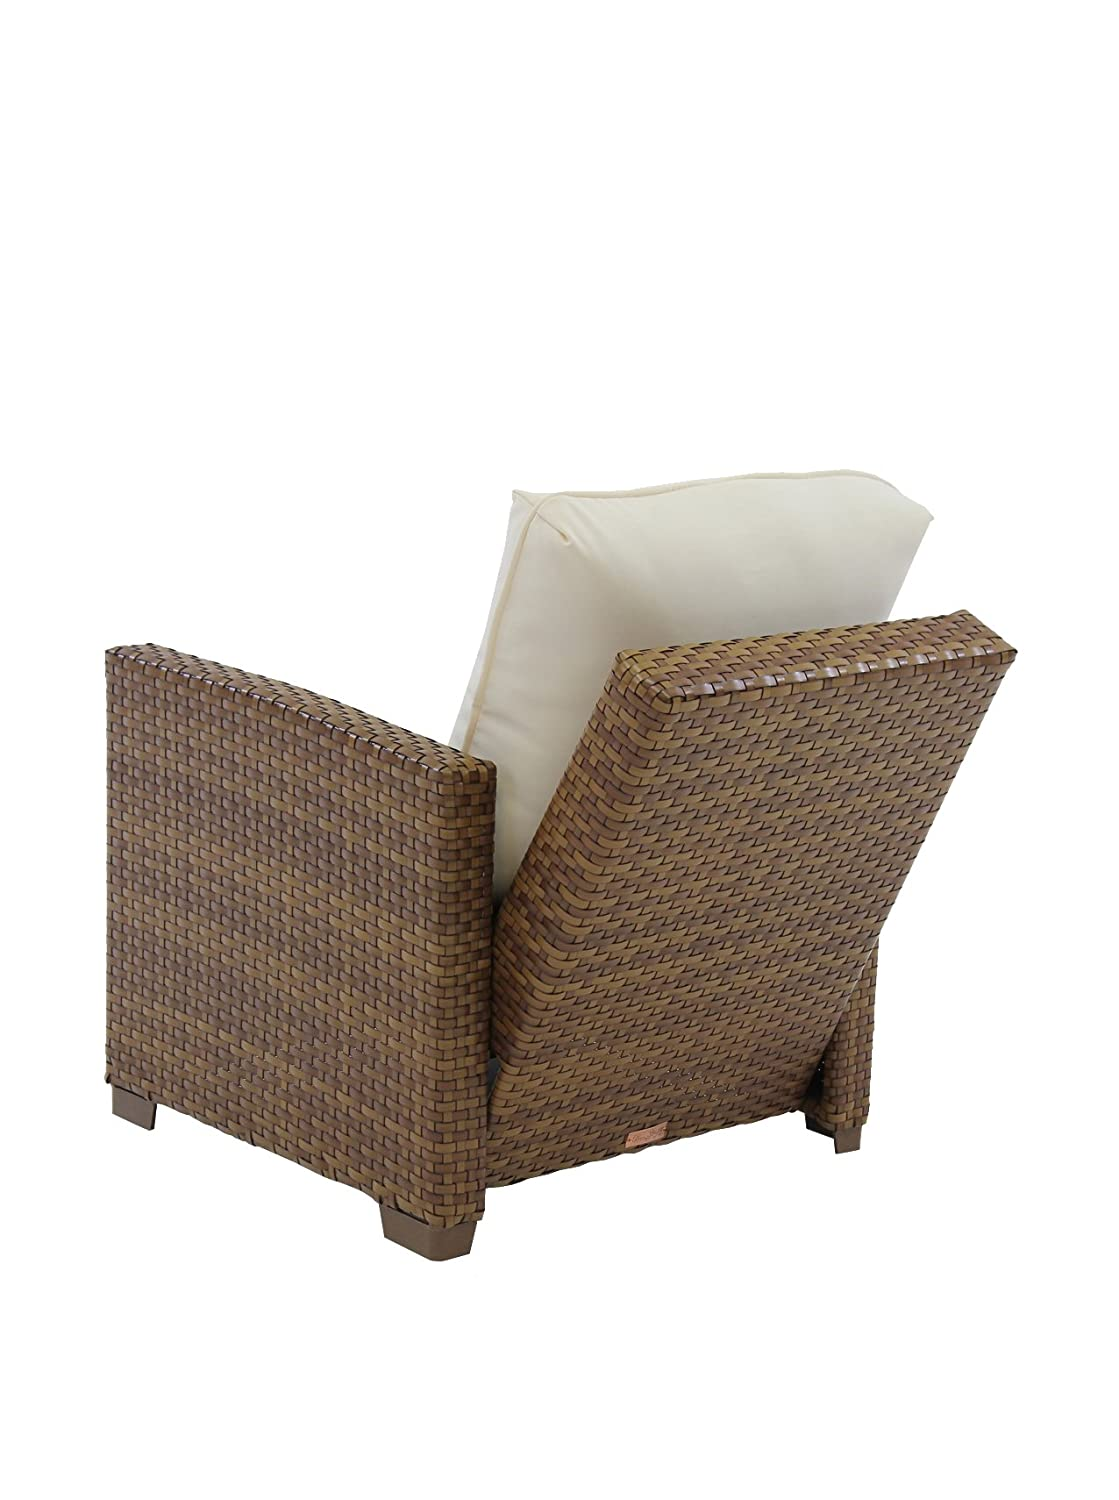 Amazon.com : Panama Jack Outdoor St. Barths Recliner Lounge Chair With  Cushion : Patio Lounge Chairs : Garden U0026 Outdoor